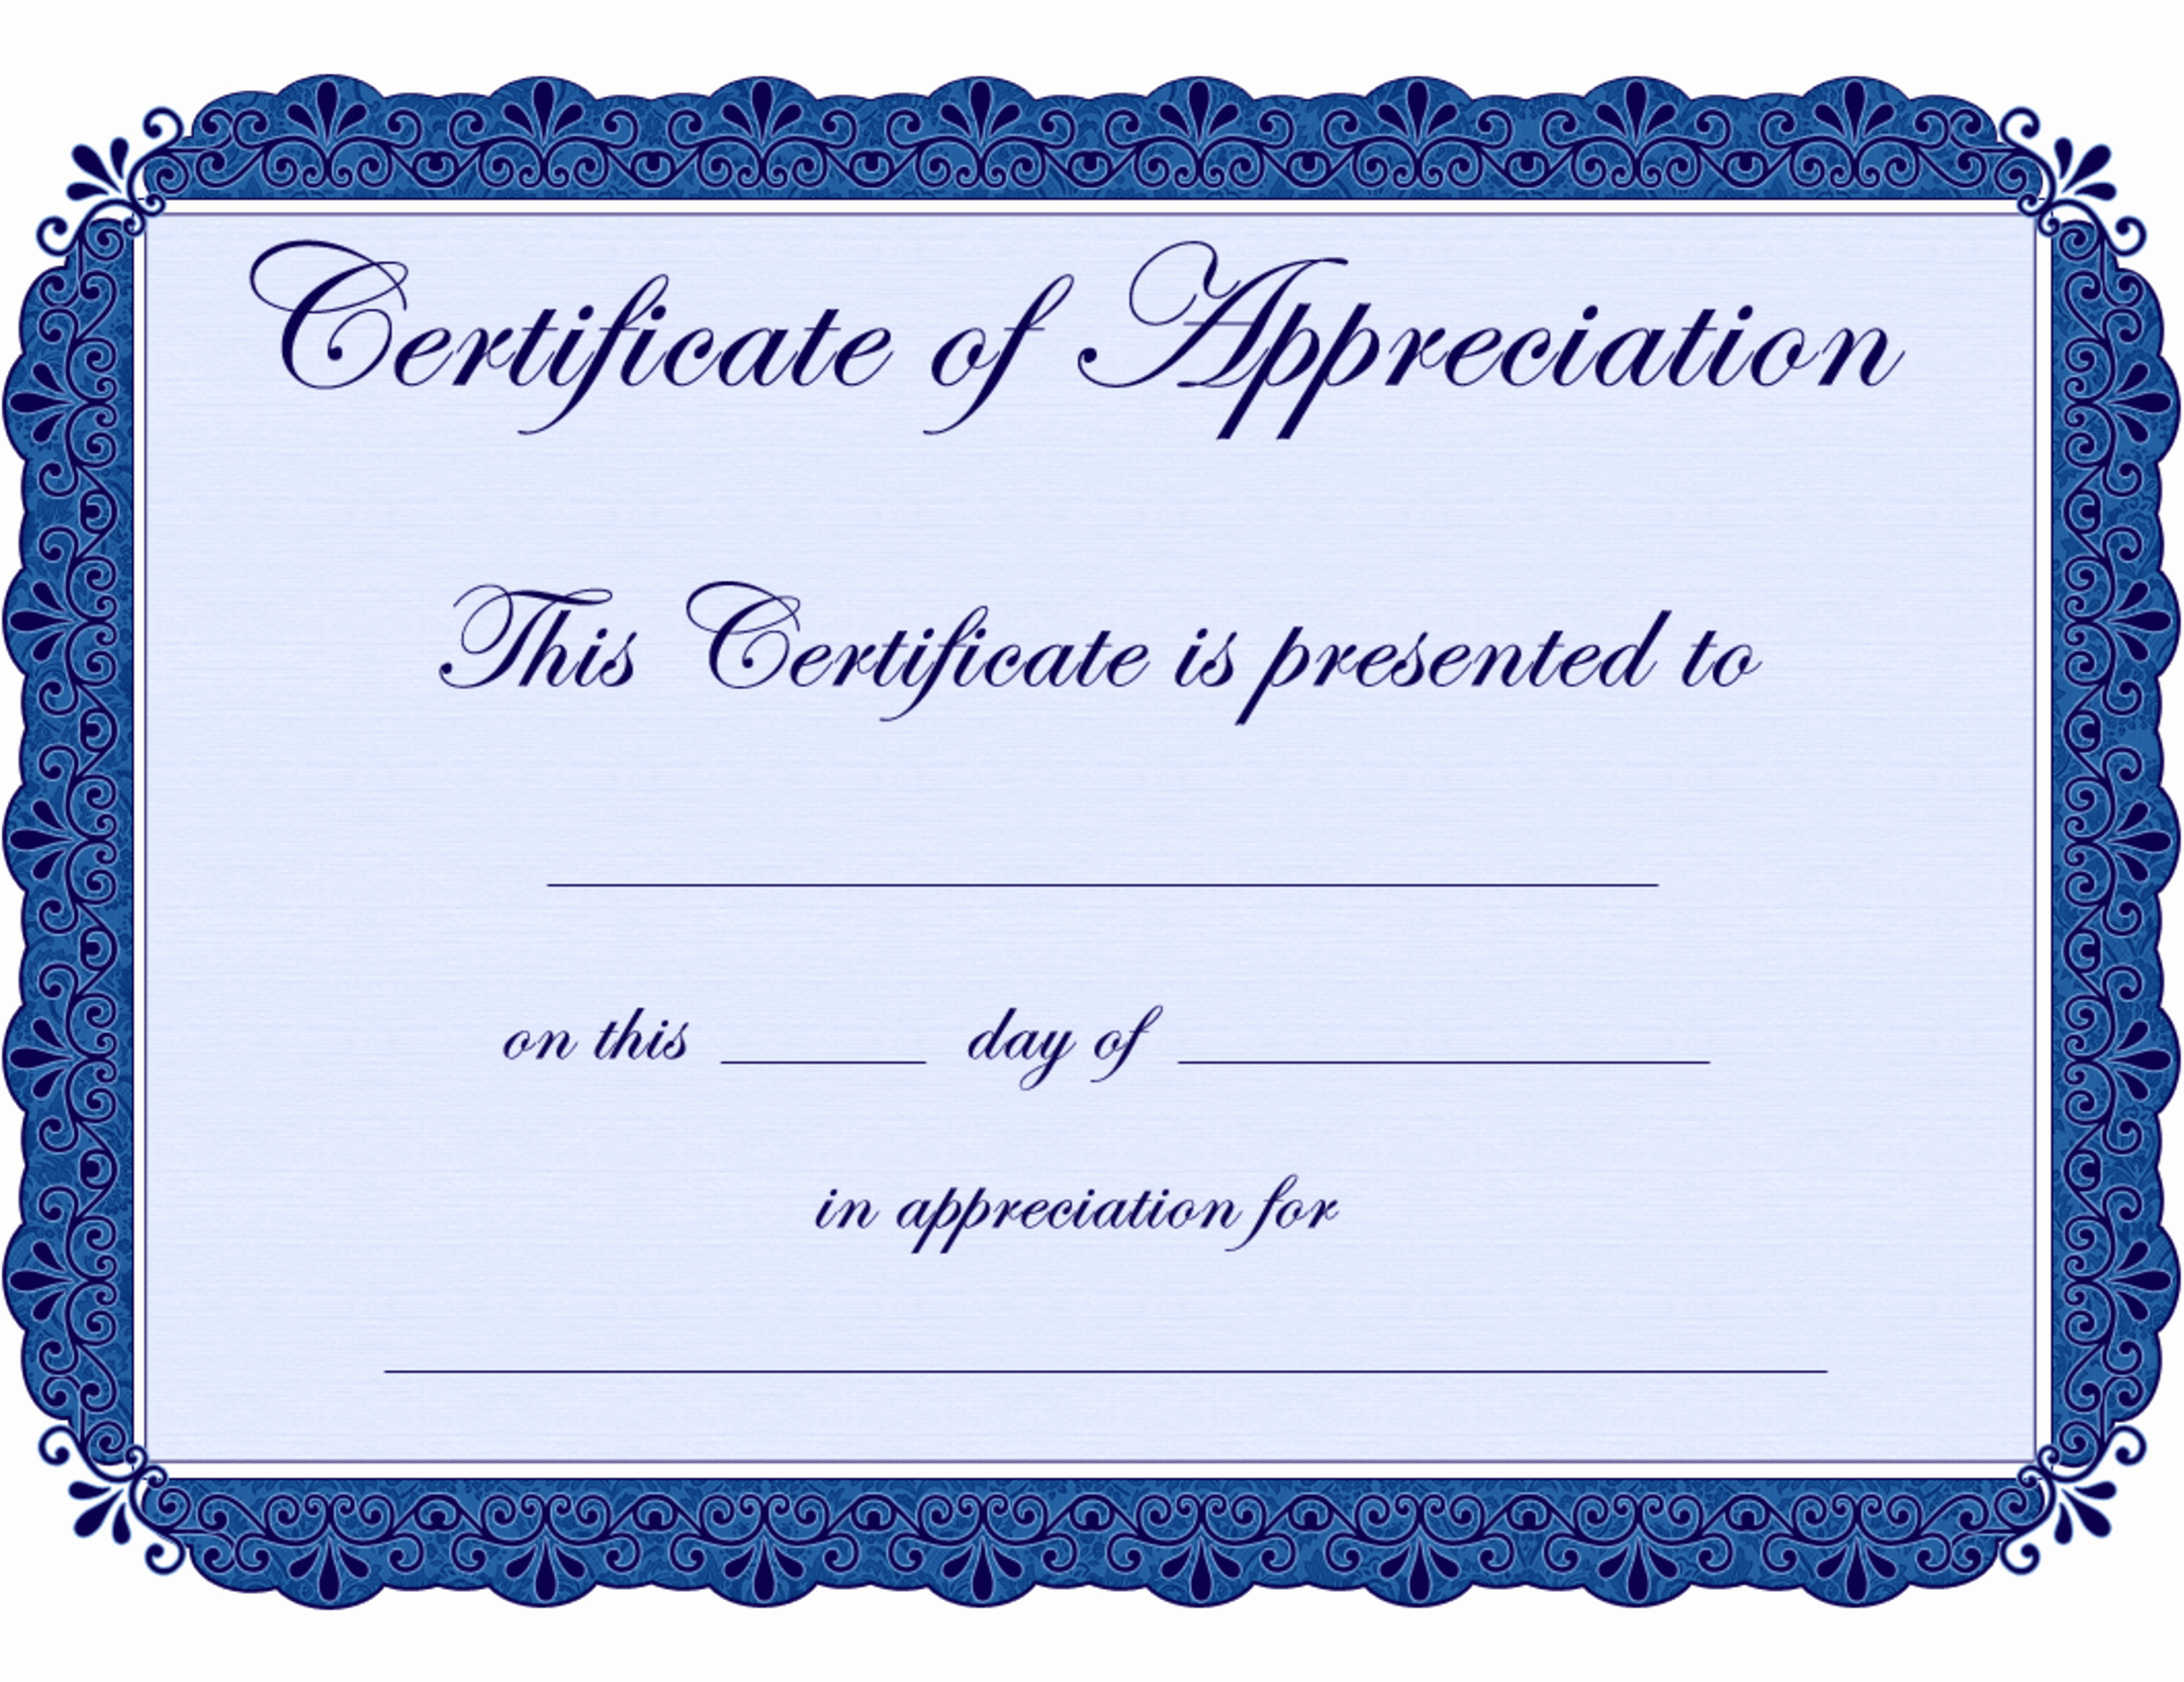 Appreciation Certificate Template Free Luxury Free Printable Certificates Certificate Of Appreciation